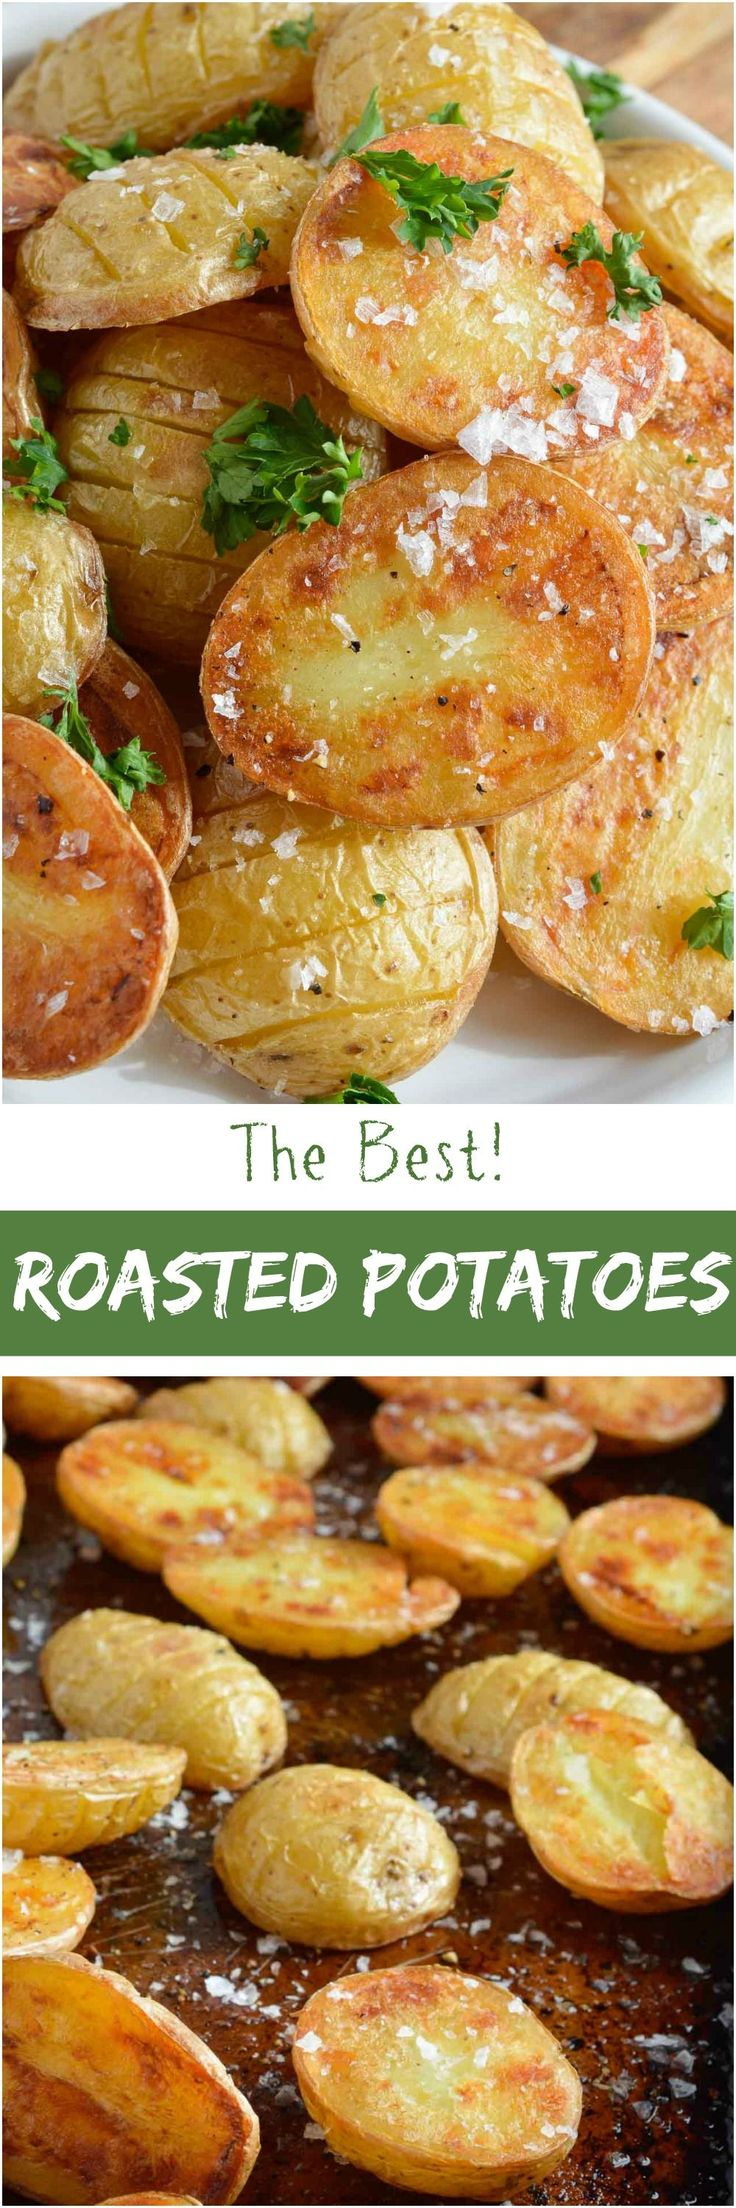 These Simple Oven Roasted Potatoes are absolute potato perfection! Golden brown and crispy on one side, creamy and dreamy on the other. This recipe is great as a side dish for just about any meal! #sidedish wonkywonderful.com